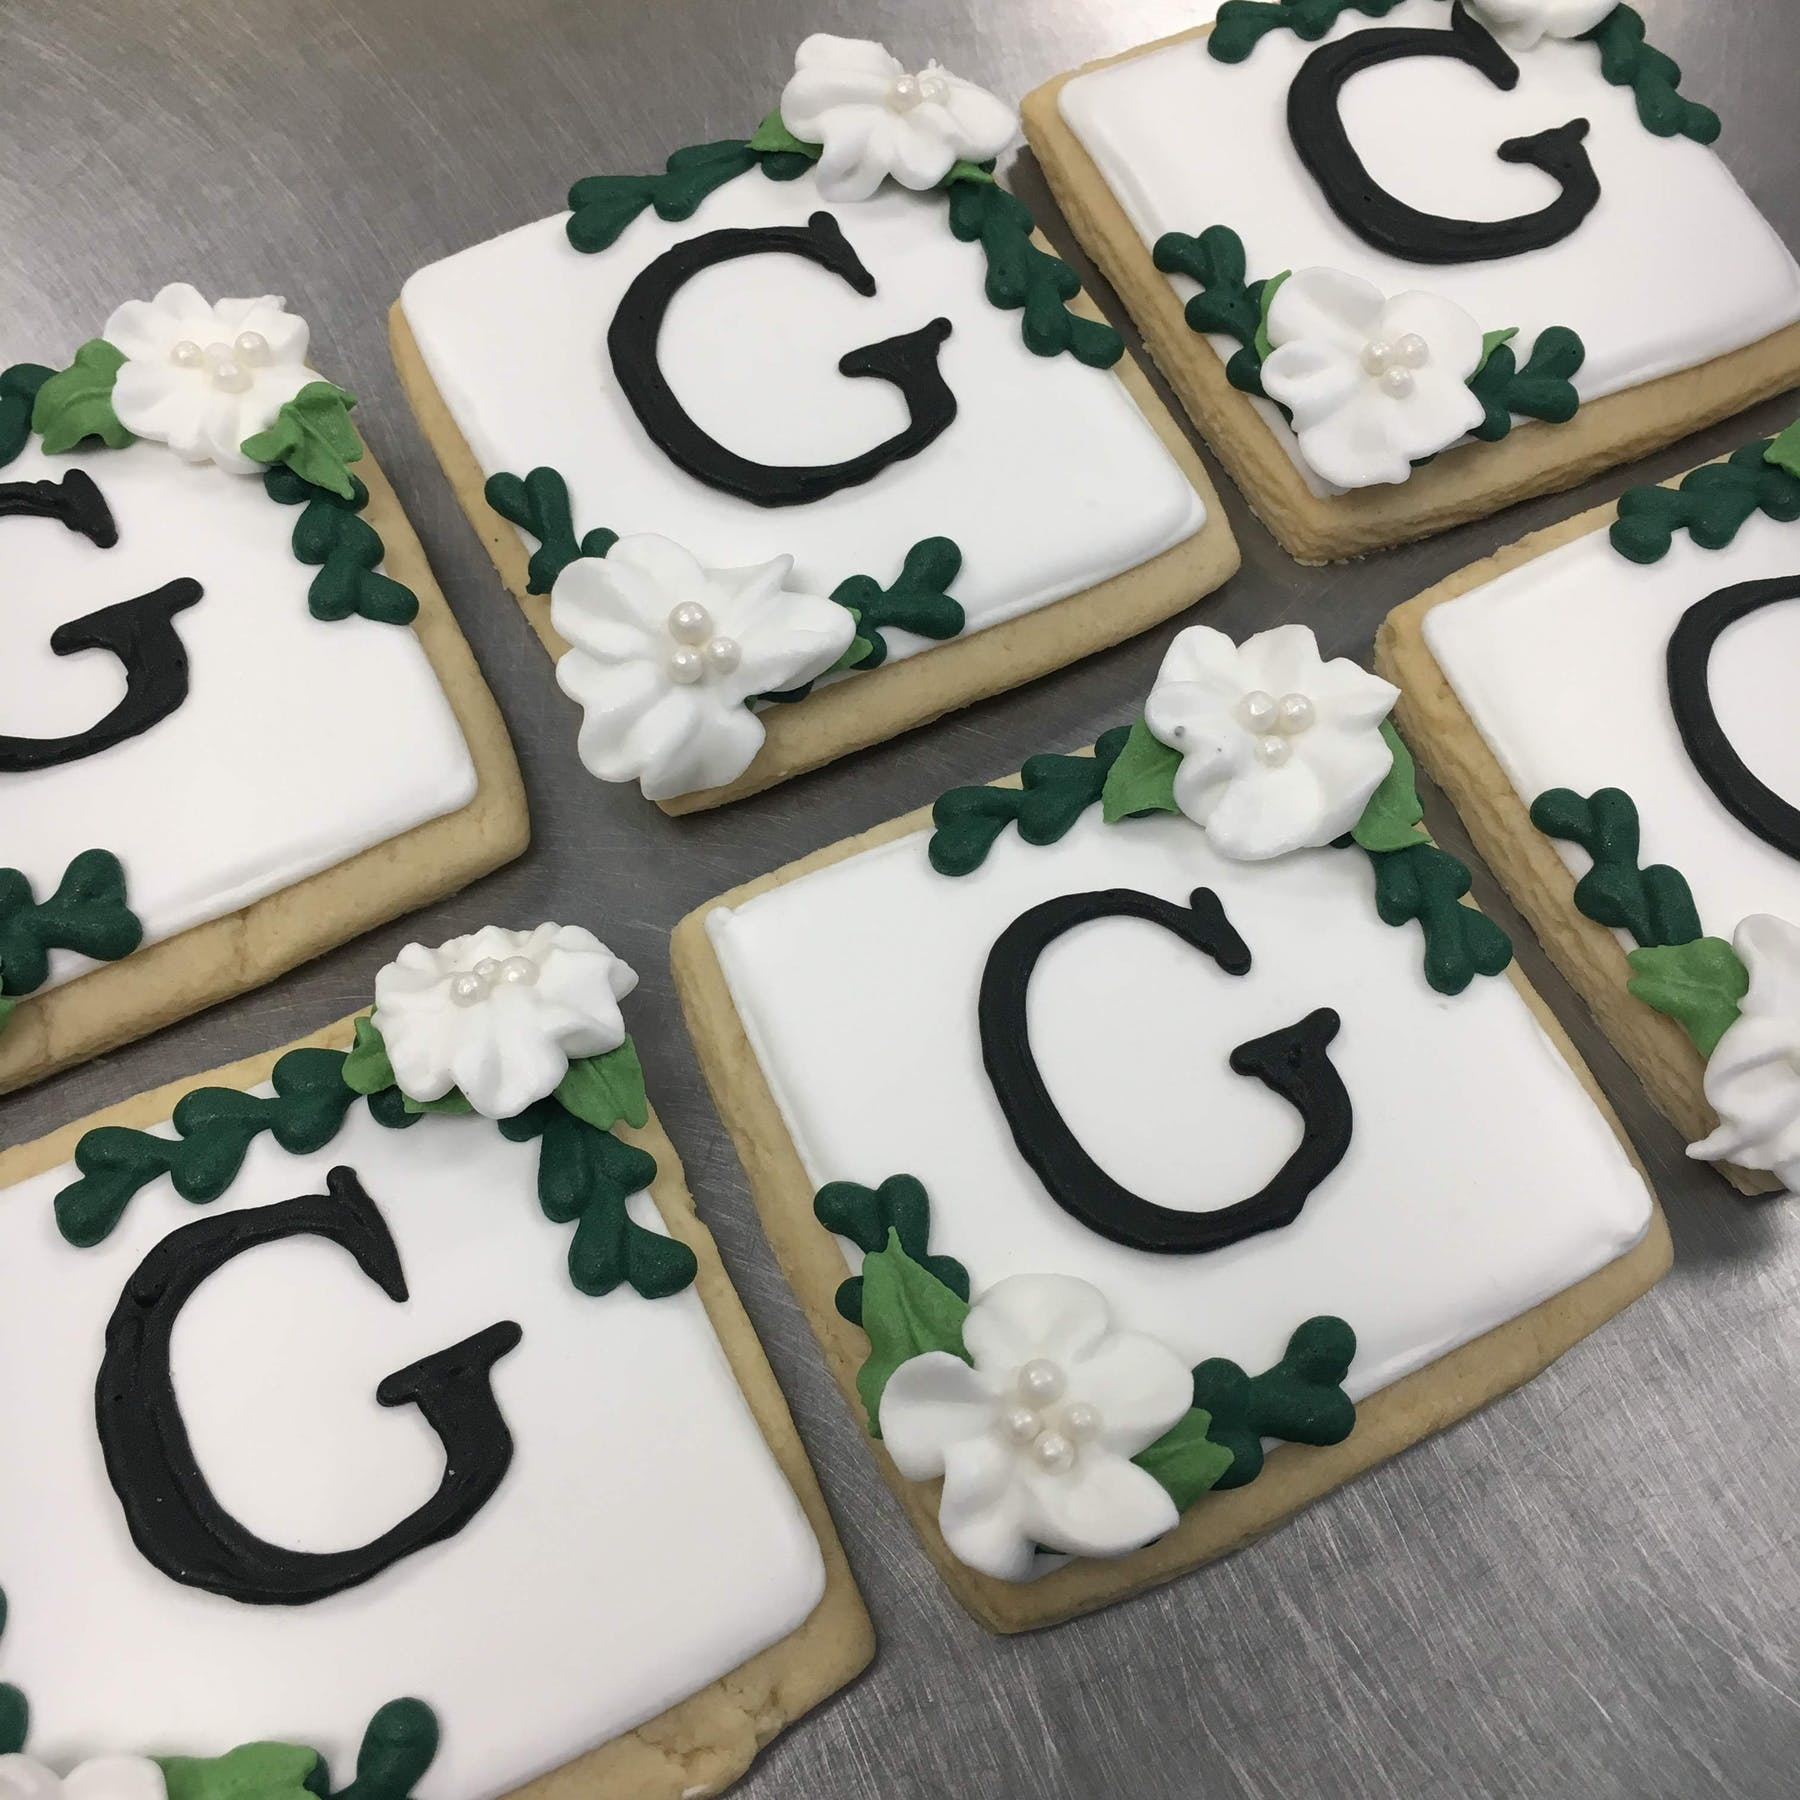 multiple cookies decorated with the letter G